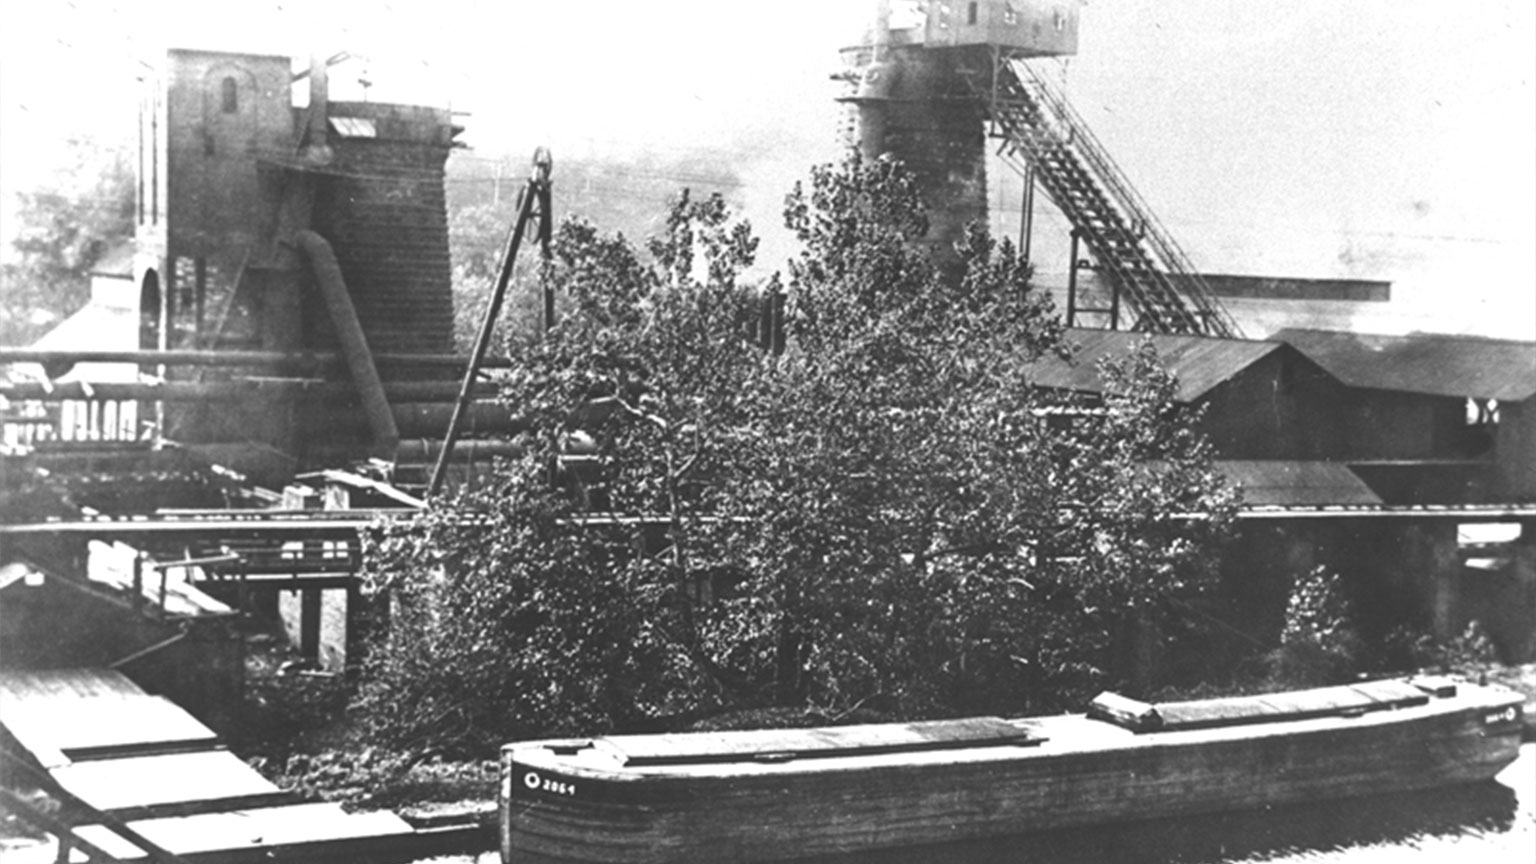 The iron company relied on the canal boats to bring raw materials that it needed and to deliver their pig iron to other locations.